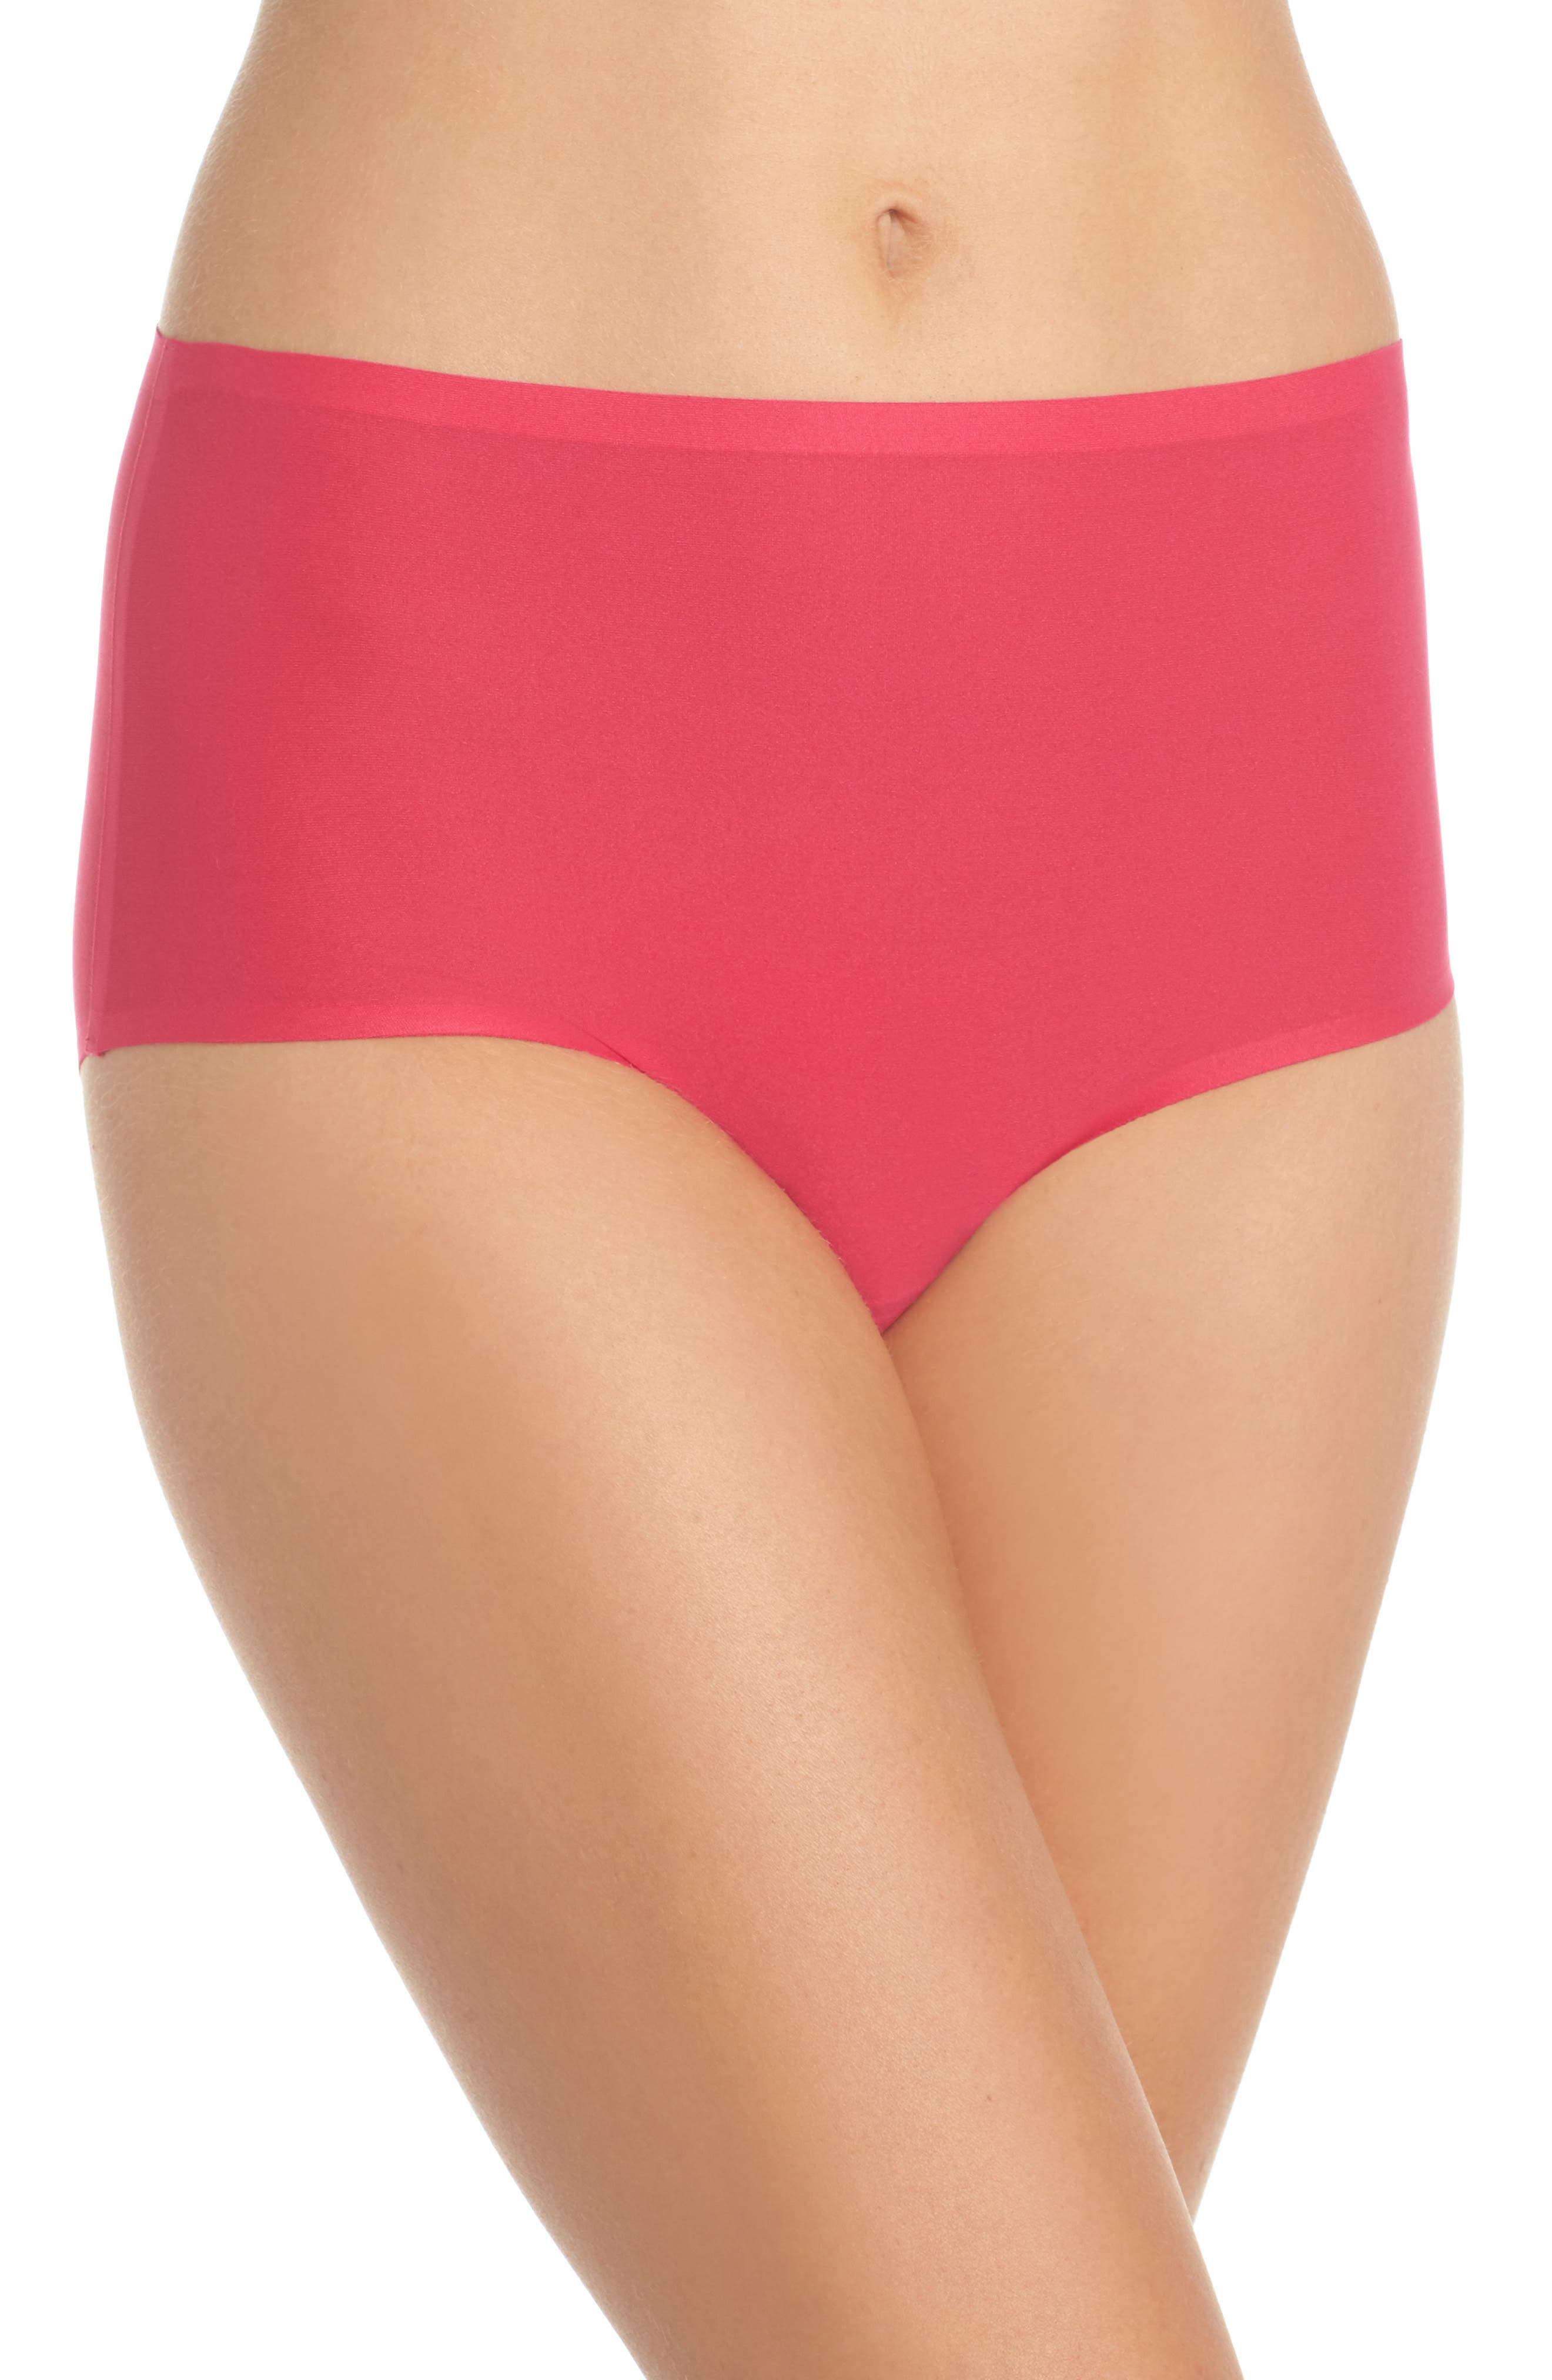 Chantelle Intimates Soft Stretch High Waist Seamless Briefs (3 for $45)